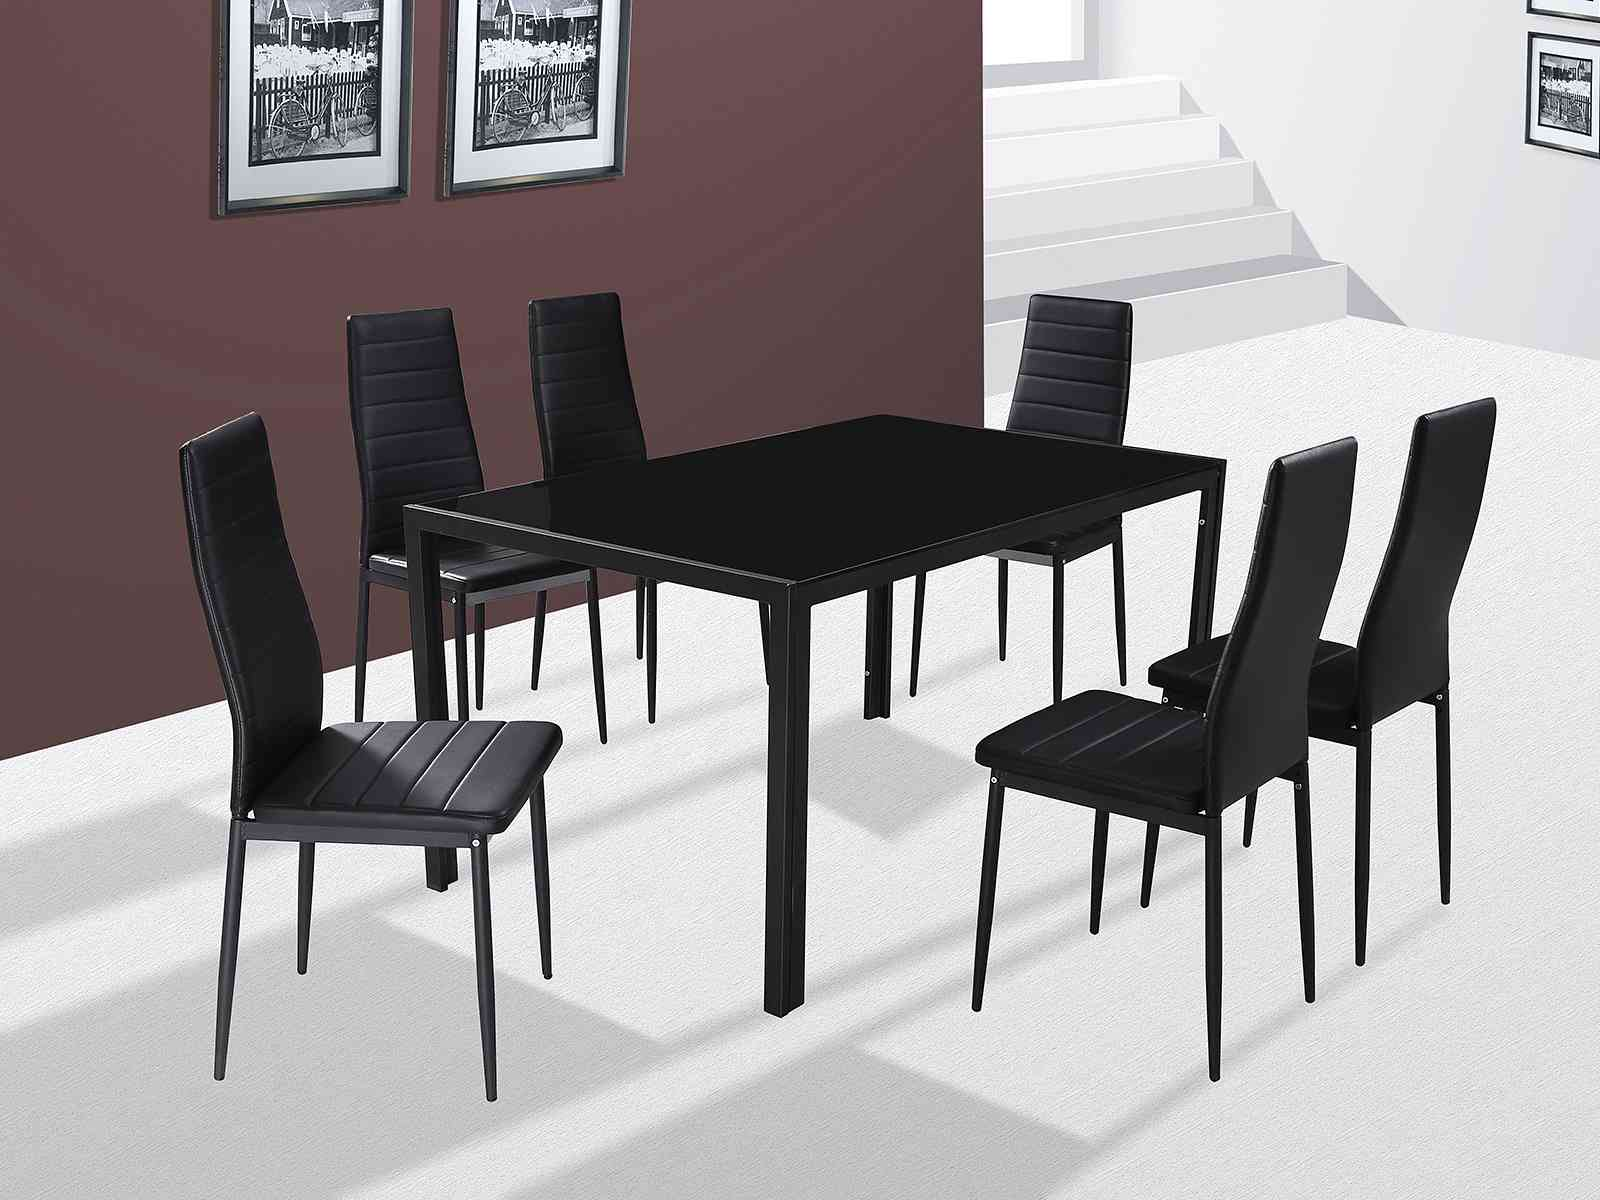 GFW The Furniture Warehouse Houston 6 Chair Dining Set